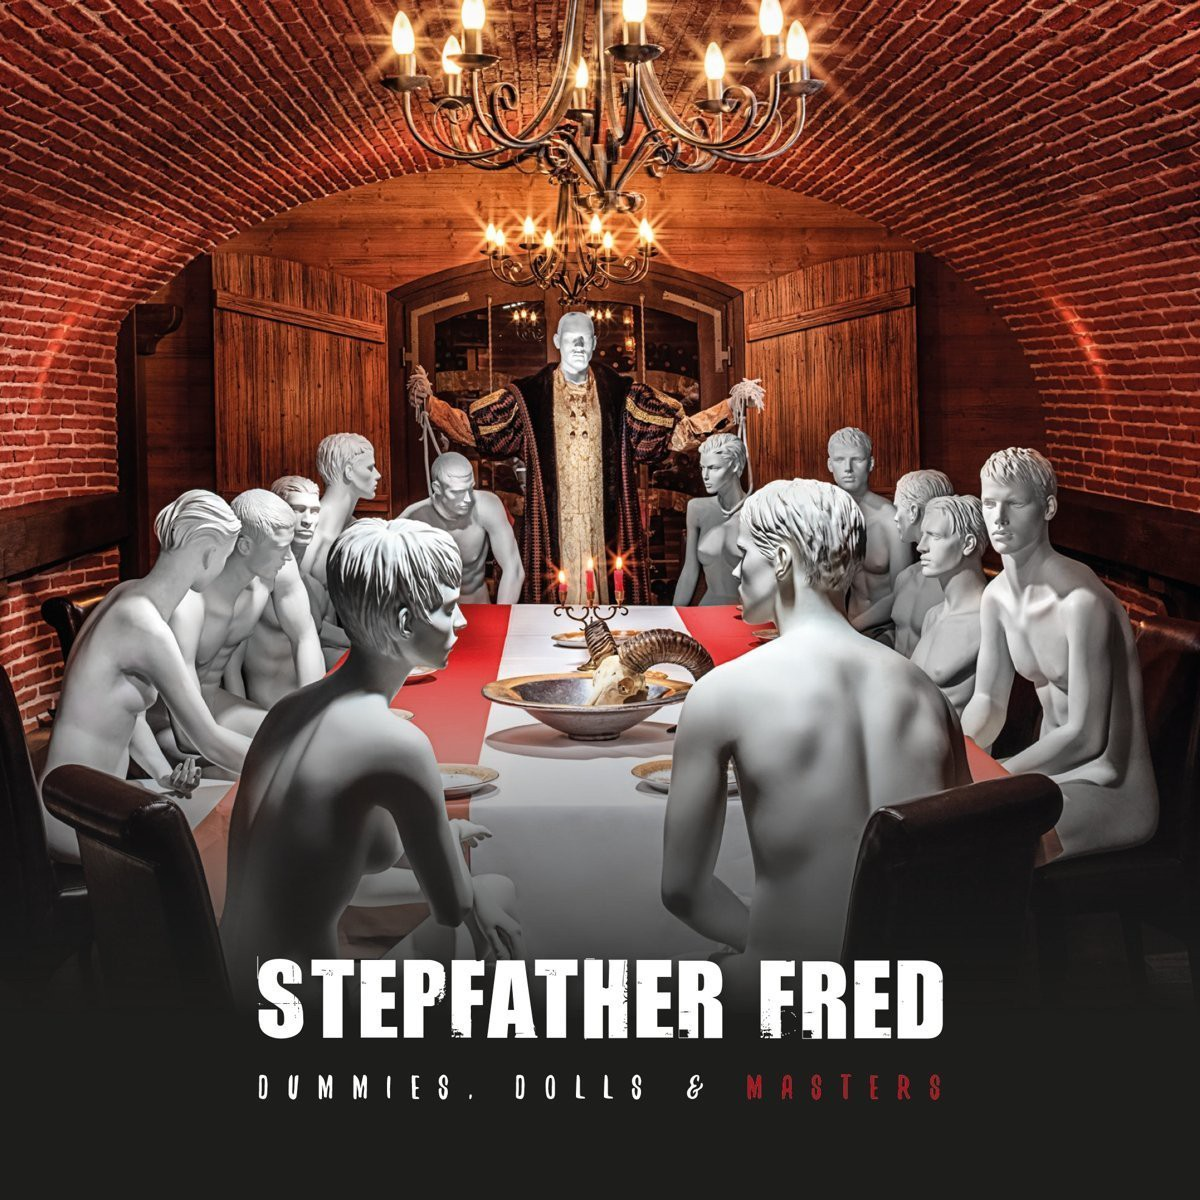 Stepfather Fred DUMMIES, DOLLS & MASTERS